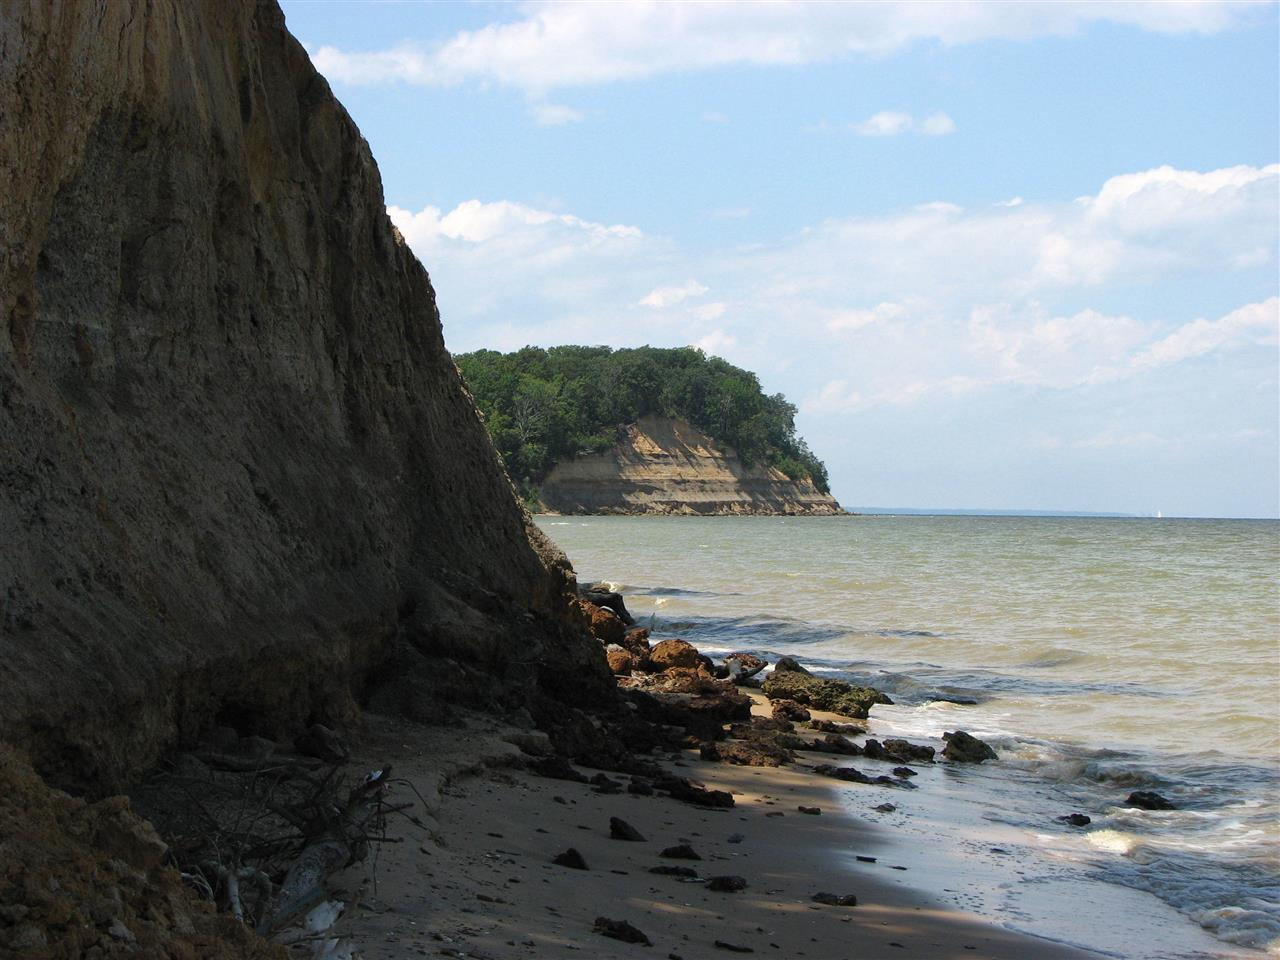 Caledon State Park King George, VA A short drive from Fredericksburg and Stafford  Experience a trail walk, a tire playground, fossils, beach and cliffs!